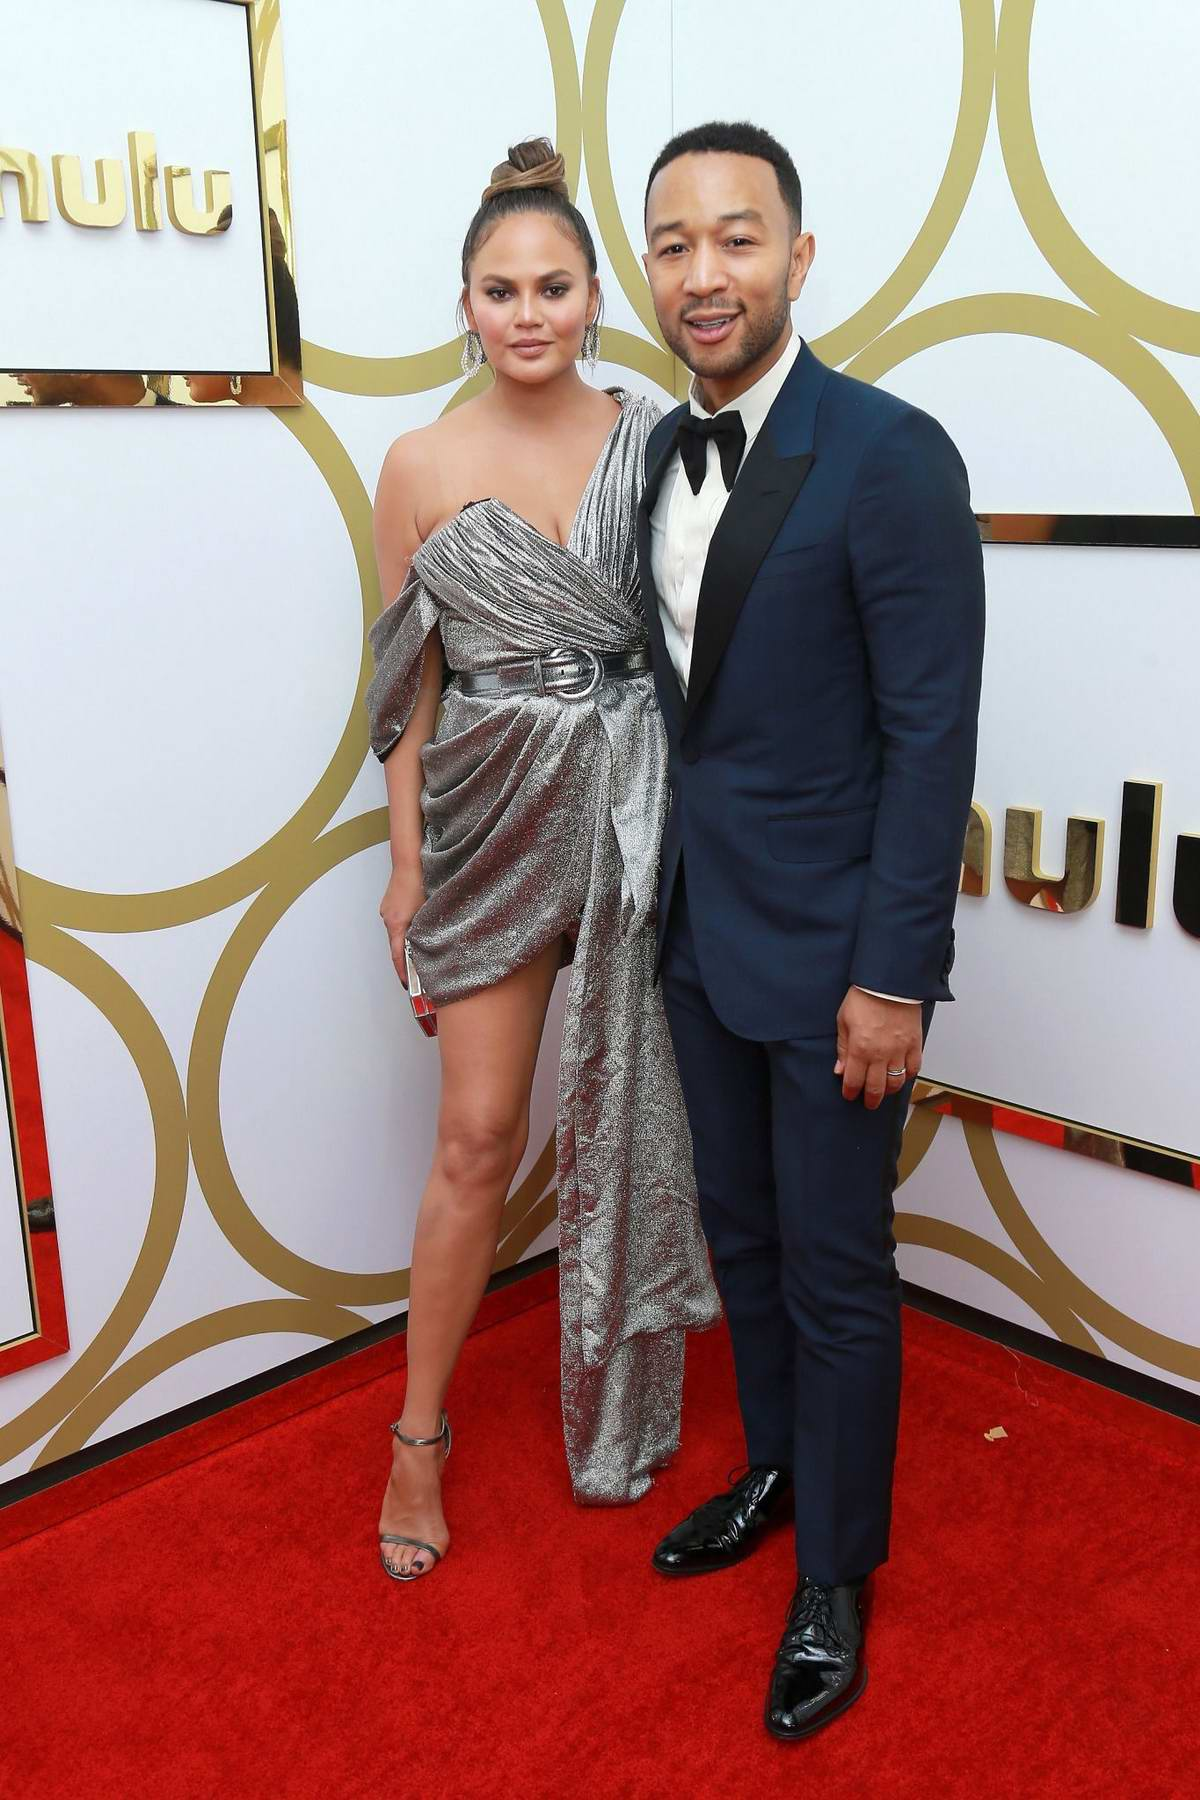 Chrissy Teigen attends Hulu's 2018 EMMY Party at the Nomad Hotel in Los Angeles